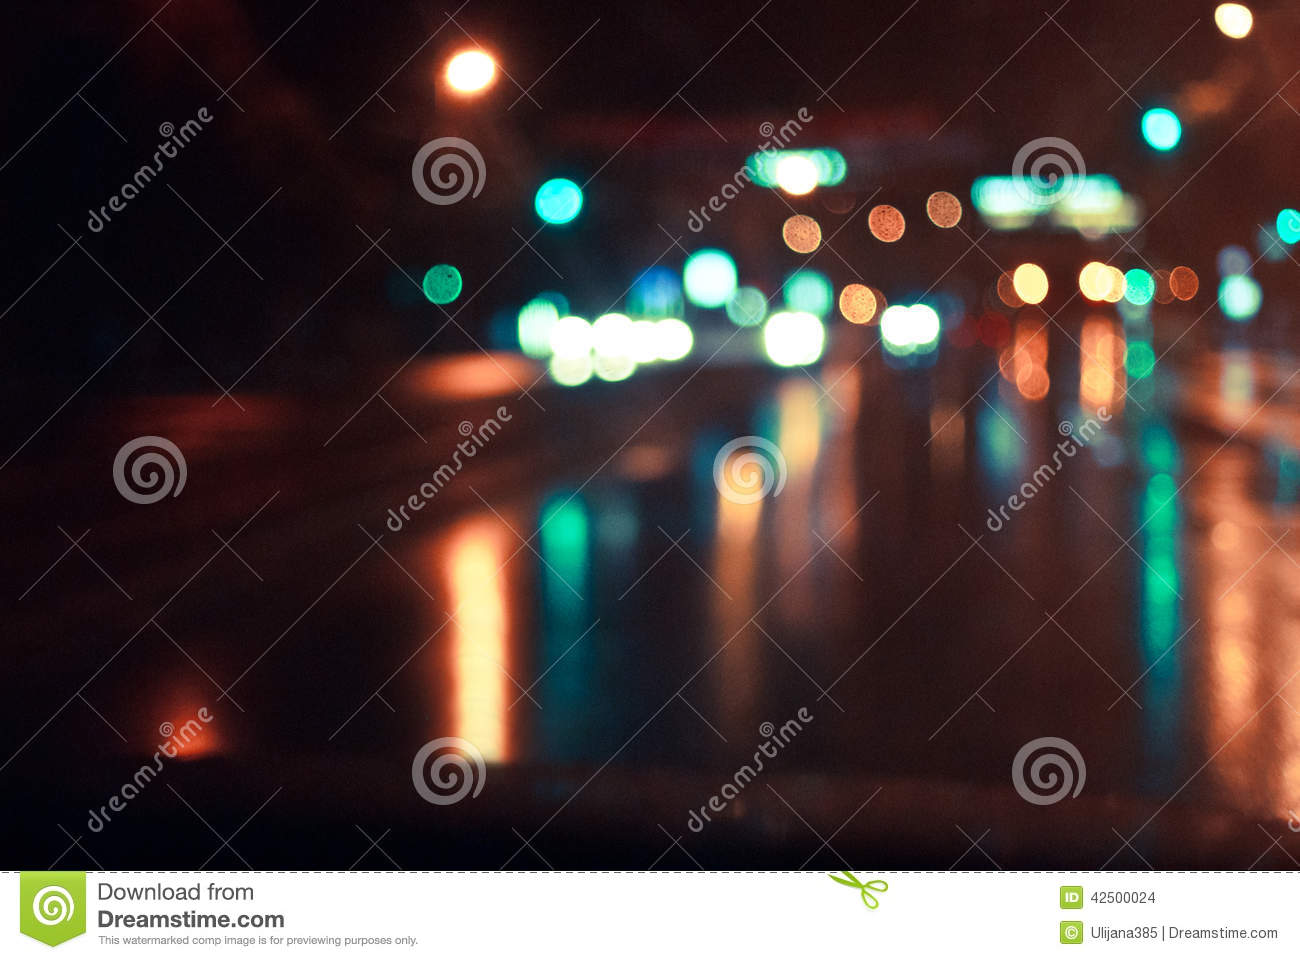 The night road in the city